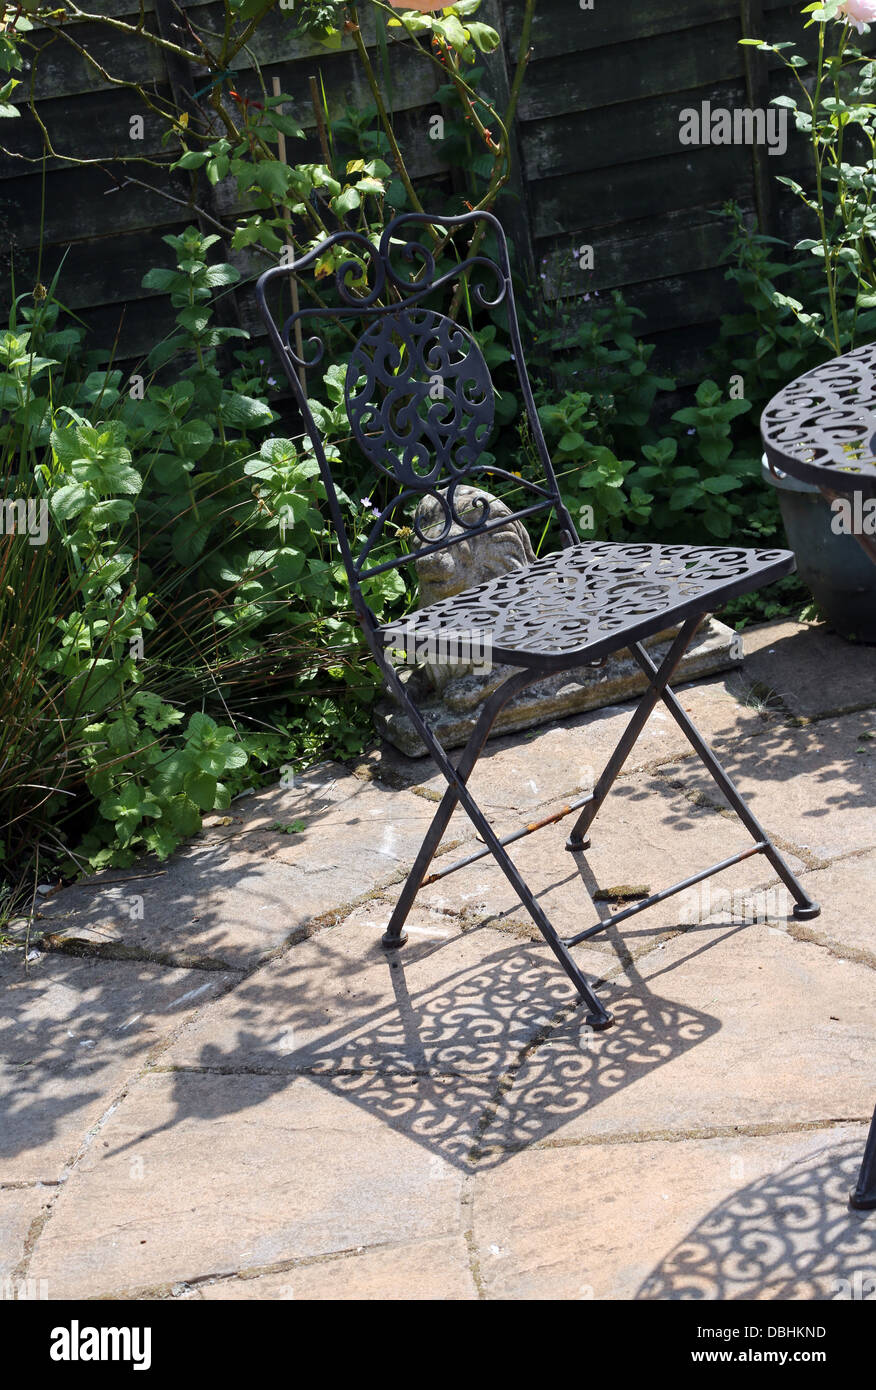 wrought iron garden furniture. Wrought Iron Garden Chair And Shadow Birmingham West Midlands England - Stock Image Furniture O